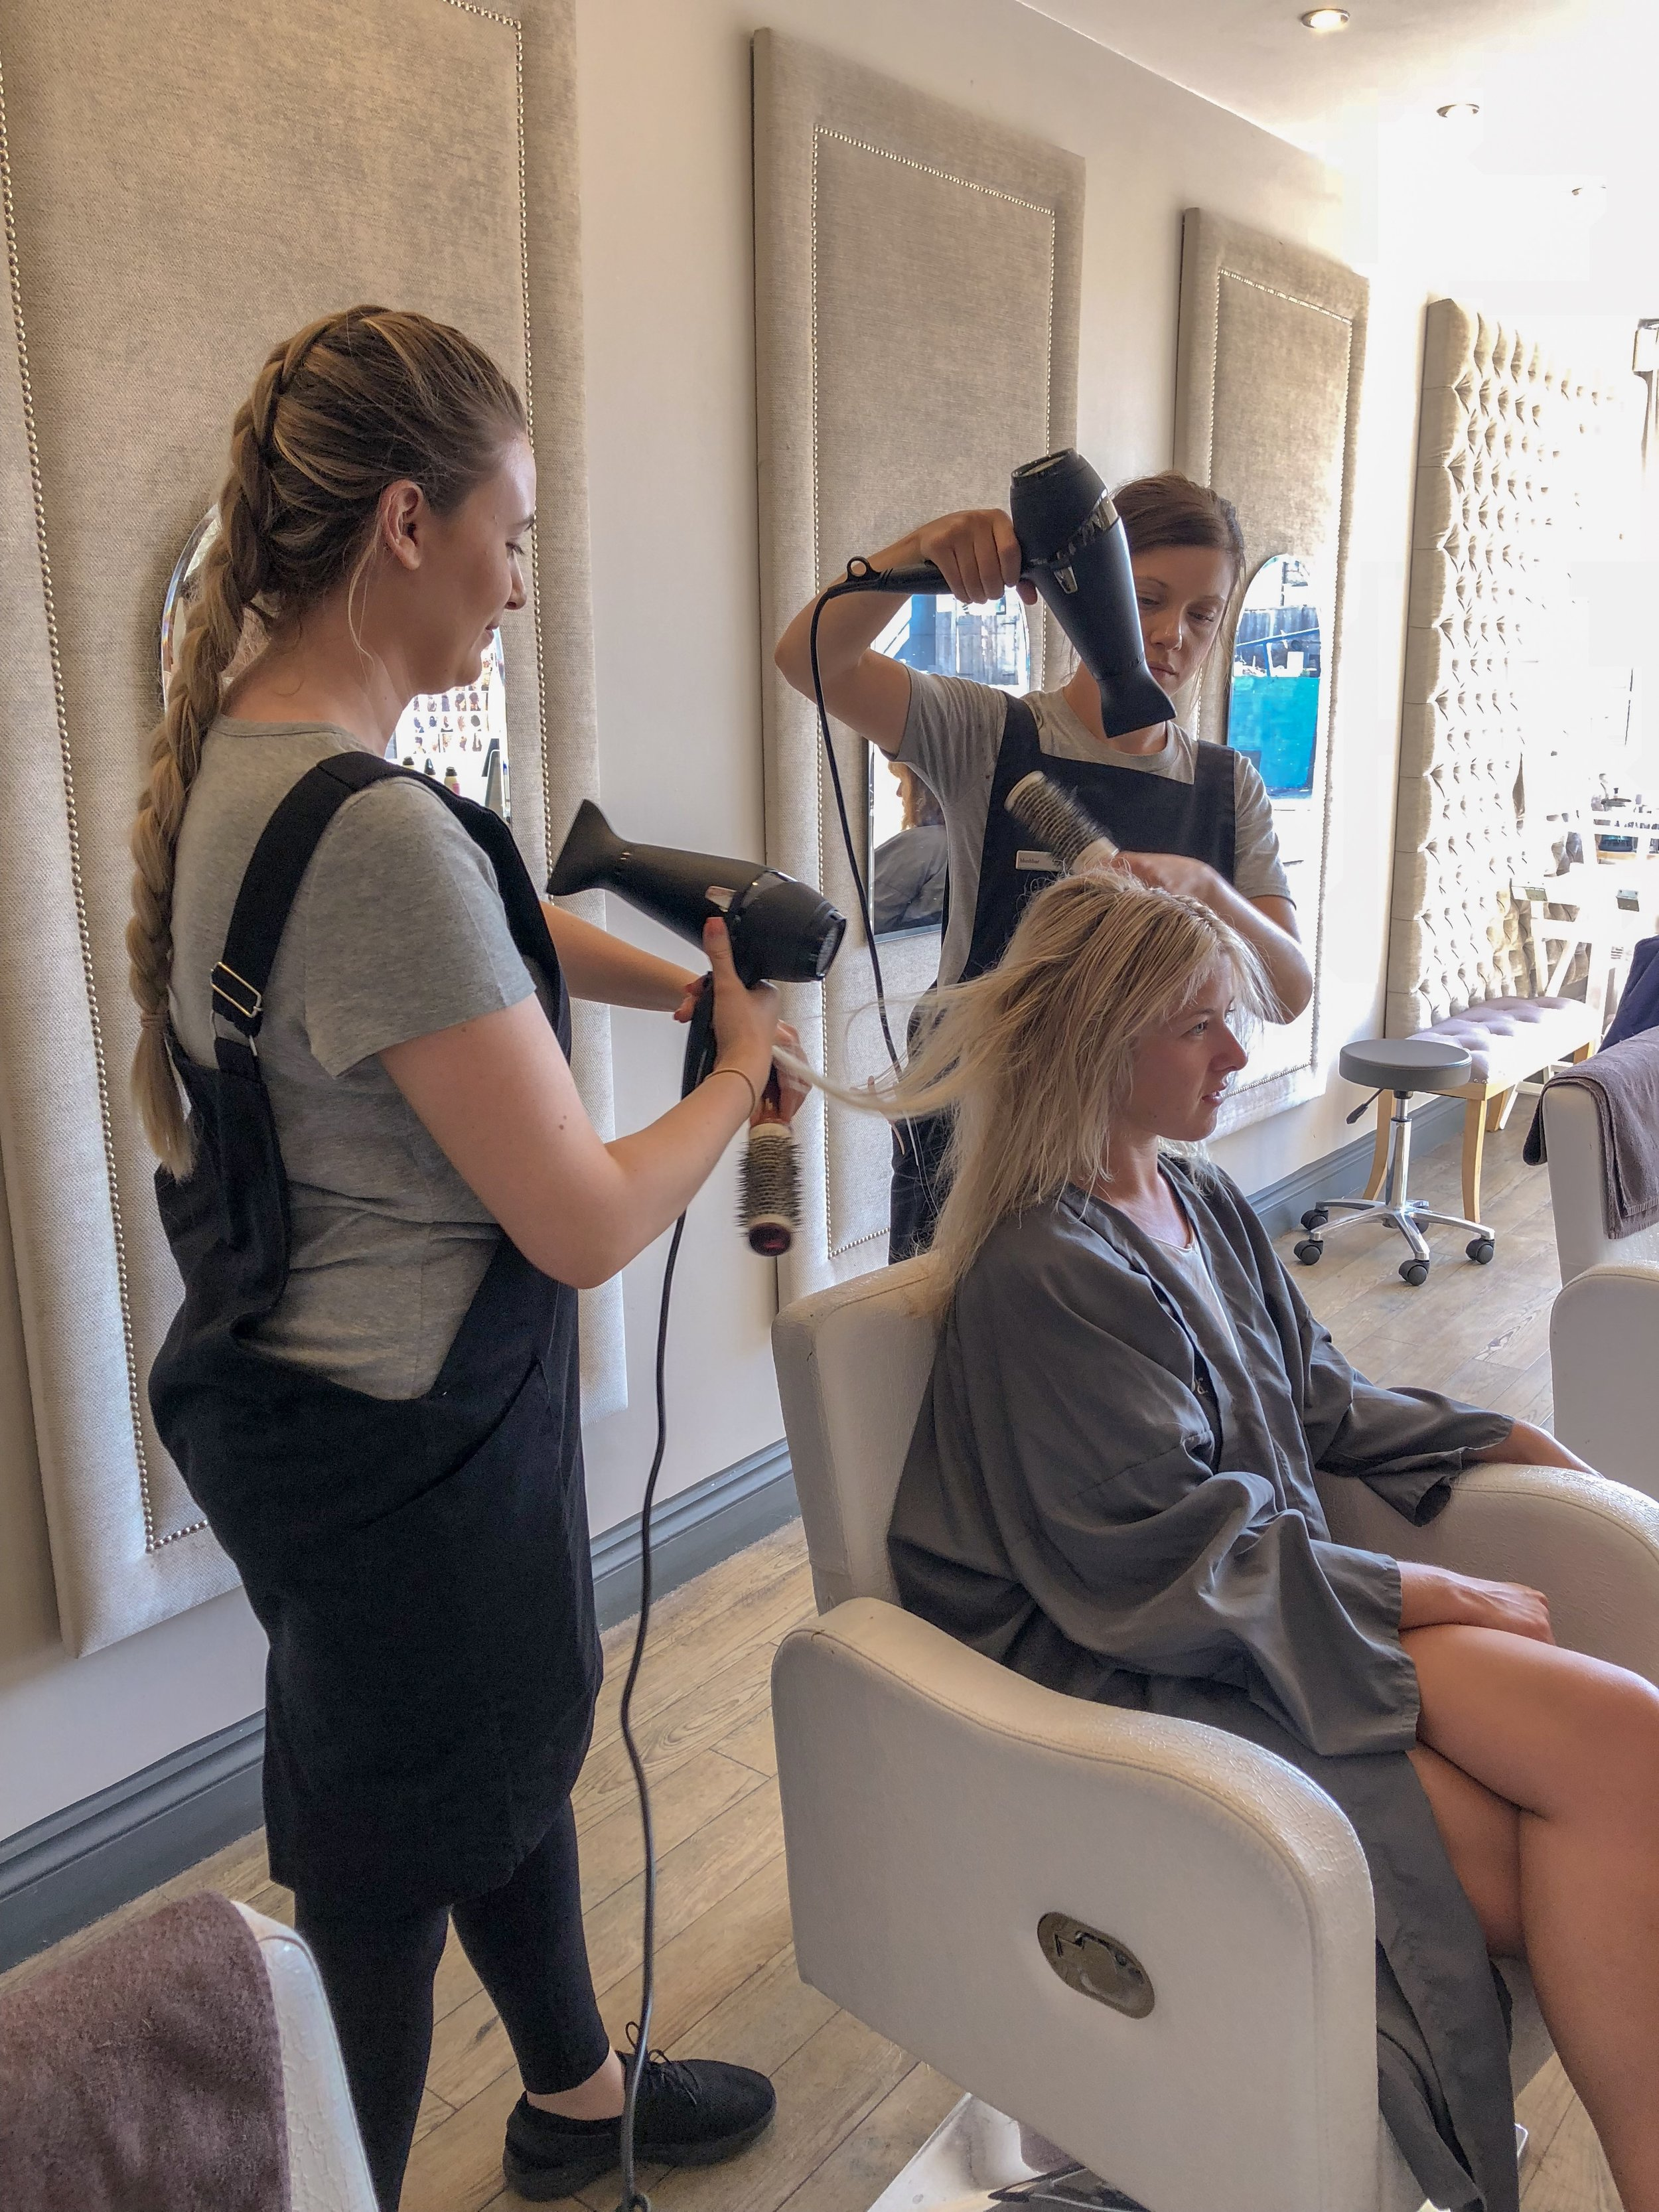 That's Mel on the left (who will be doing your hair) with our fully-trained stylist on the right, Lacey. Your hair will never be worked on without a trained stylist present.